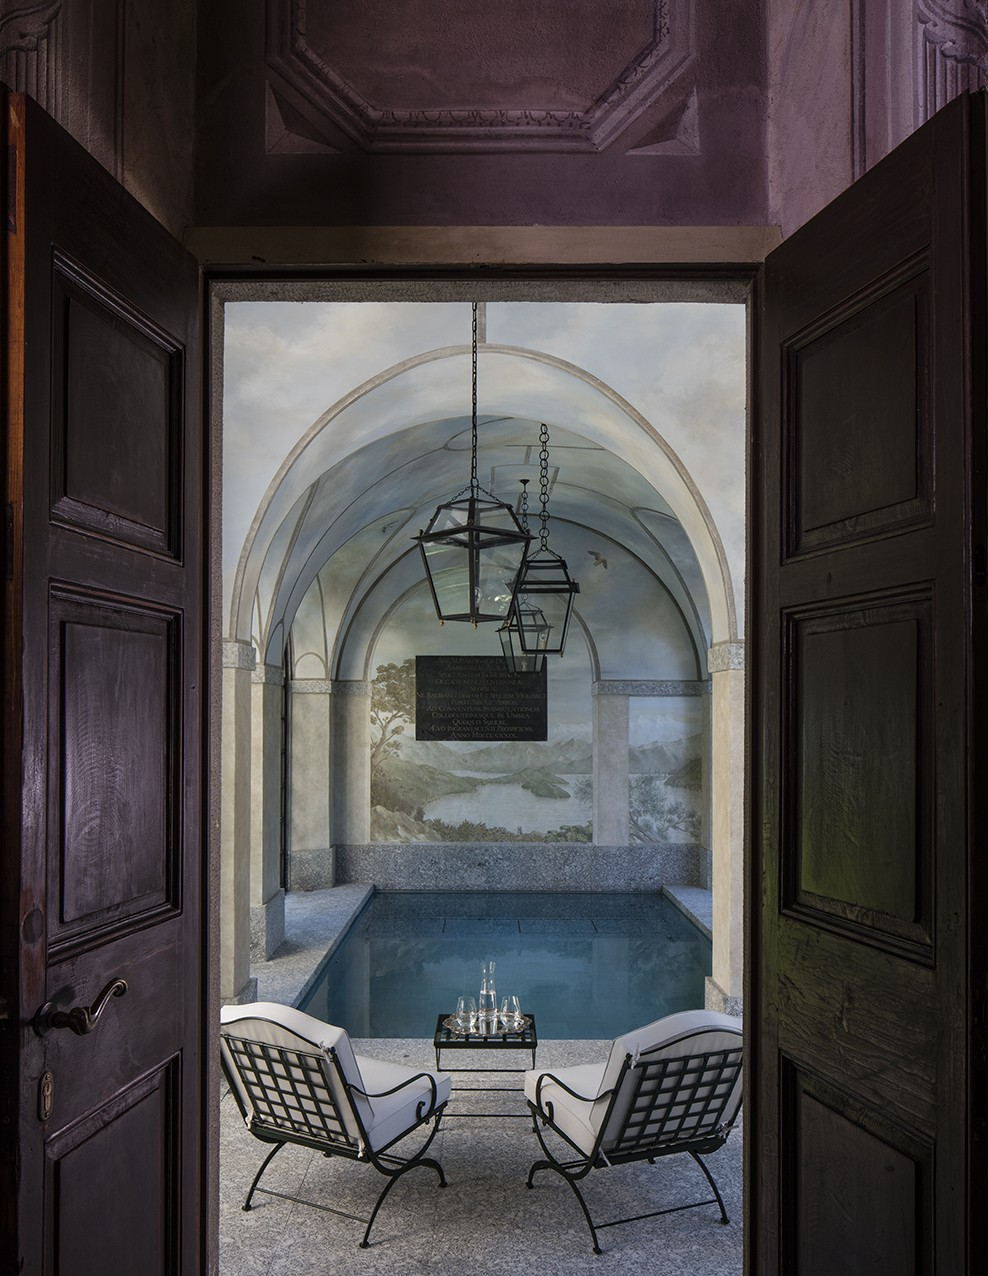 Villa Balbiano estate luxury property on lake Como guests can enjoy striking indoor swimming pool area accommodation best service